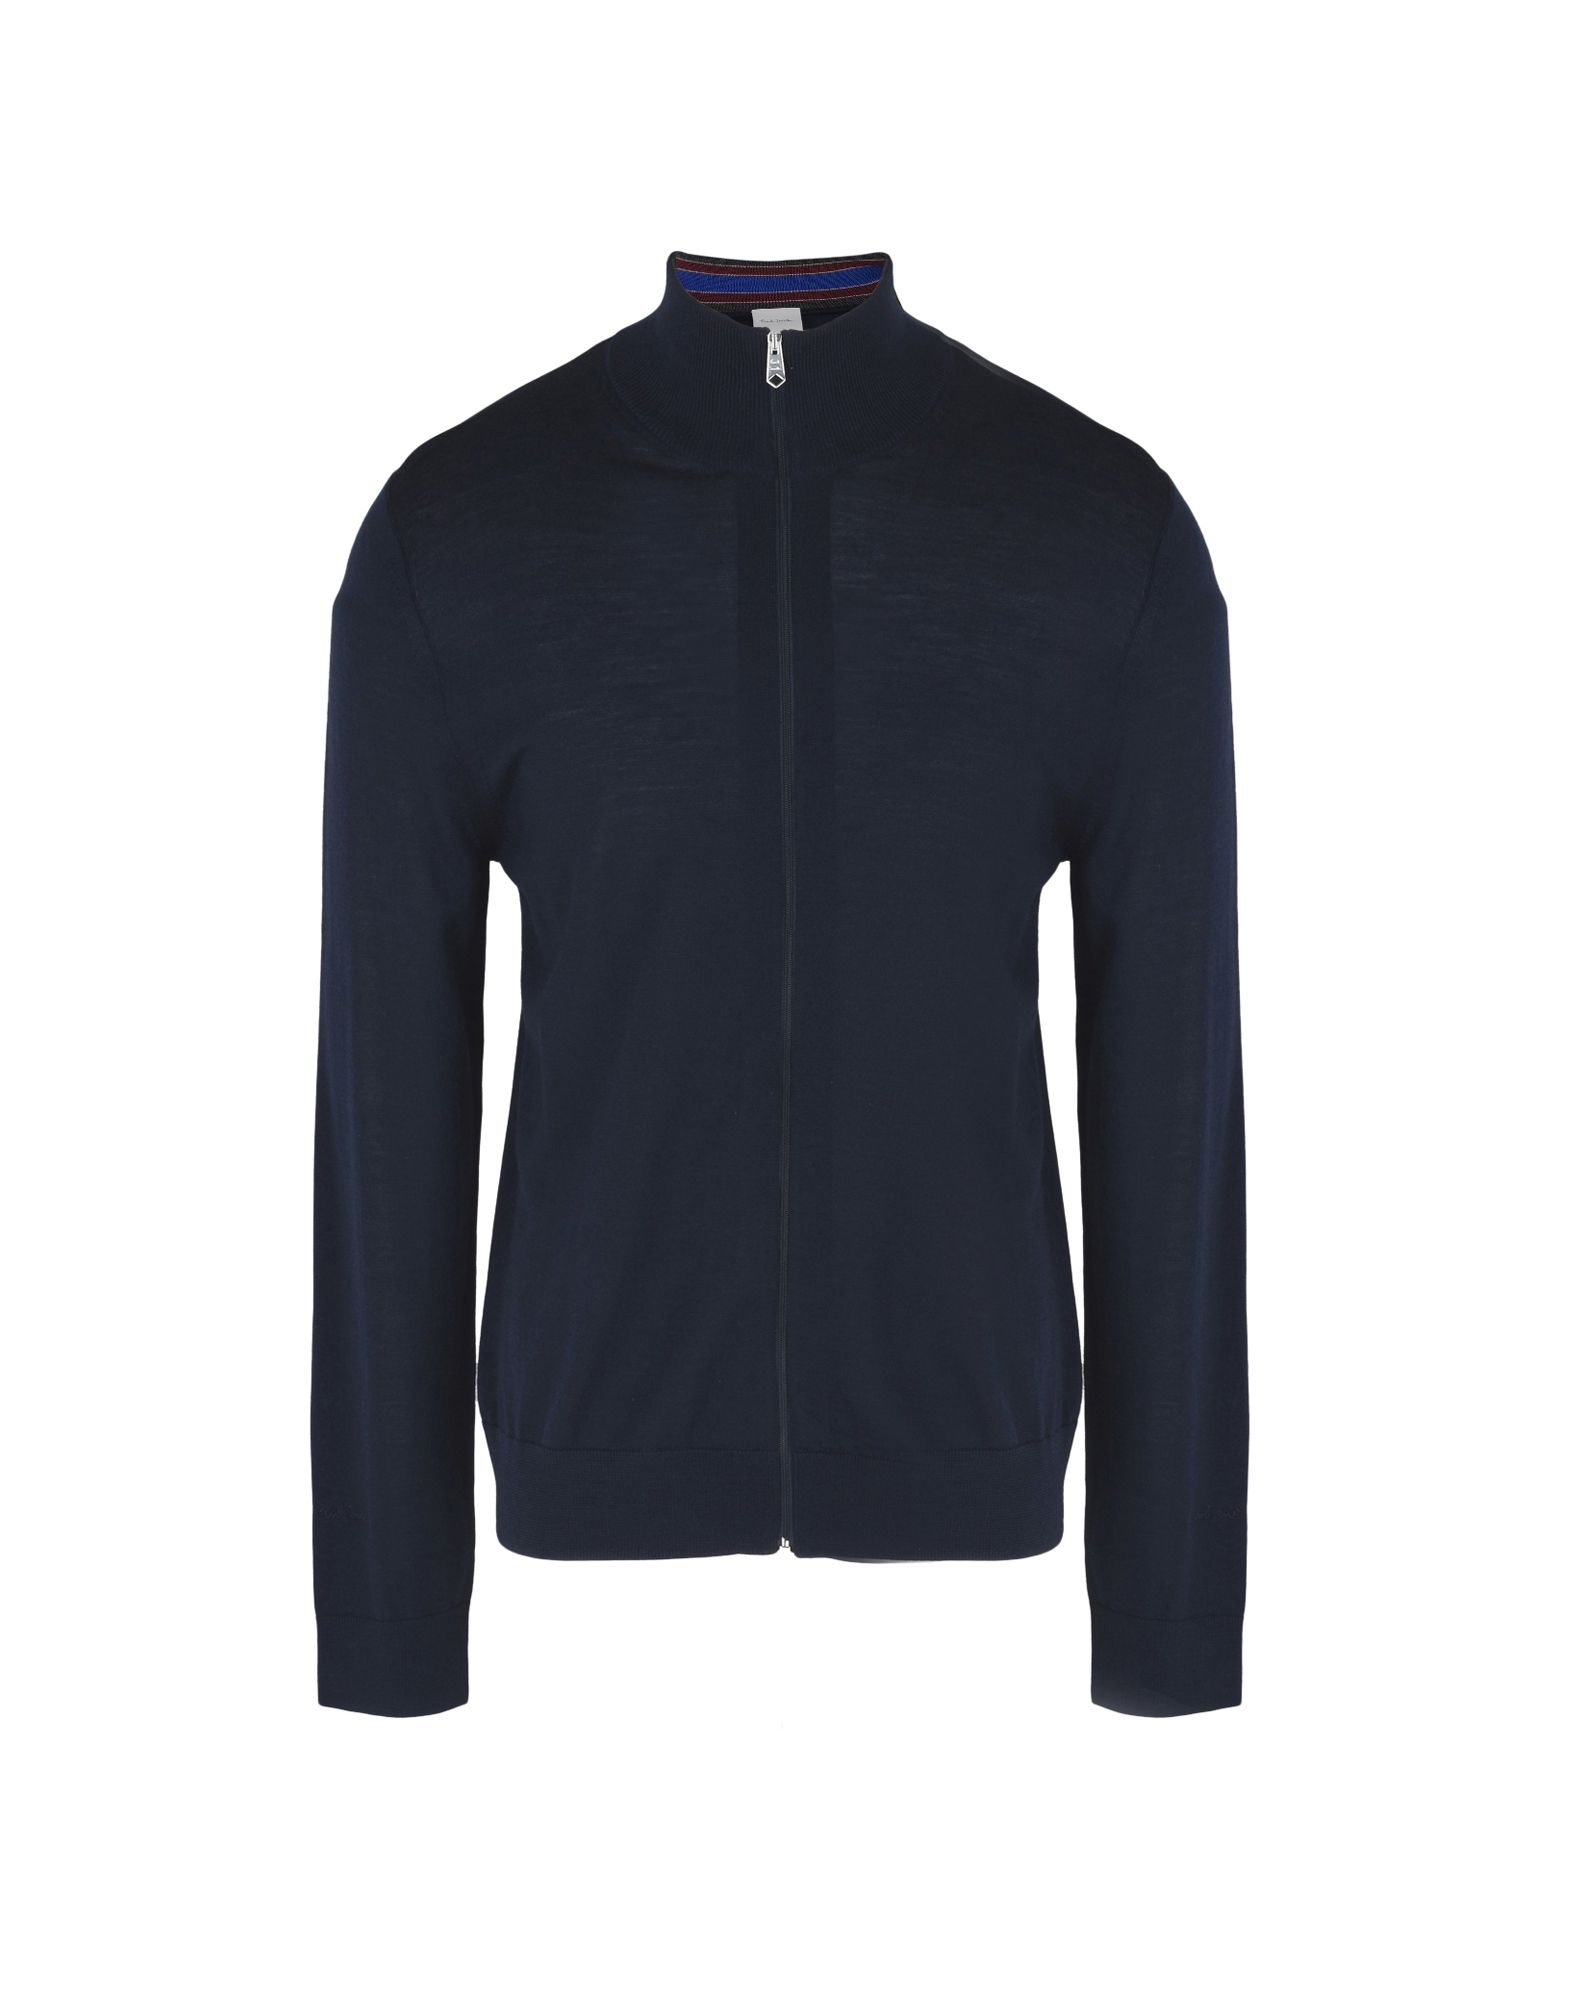 Cardigan Paul Smith Uomo - Acquista online su